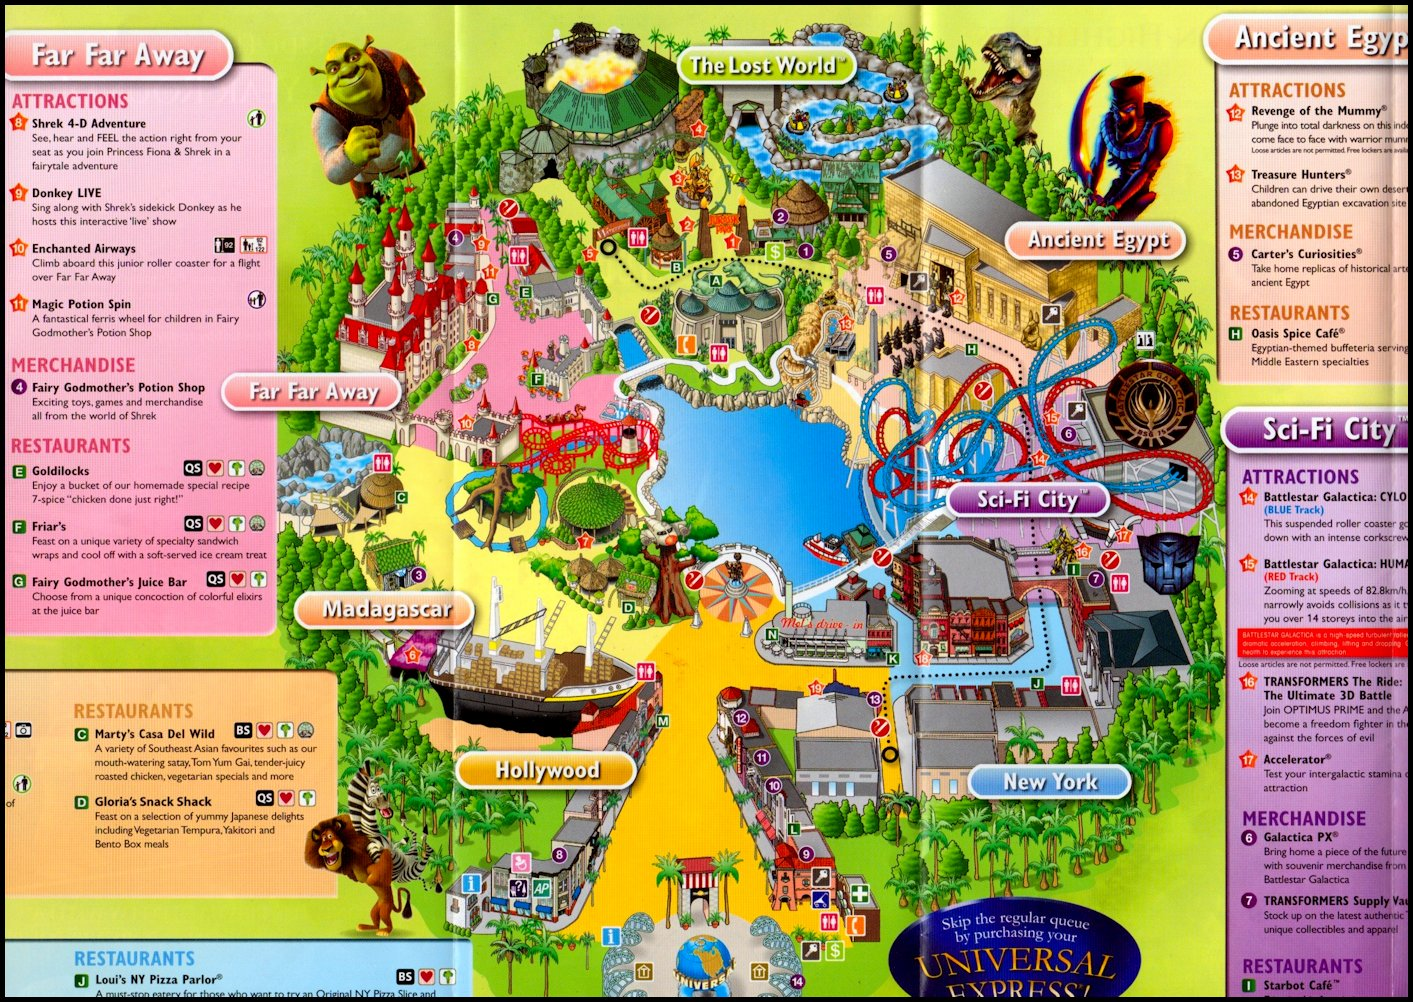 Location Map of Universal Studio Singapore for Travelers